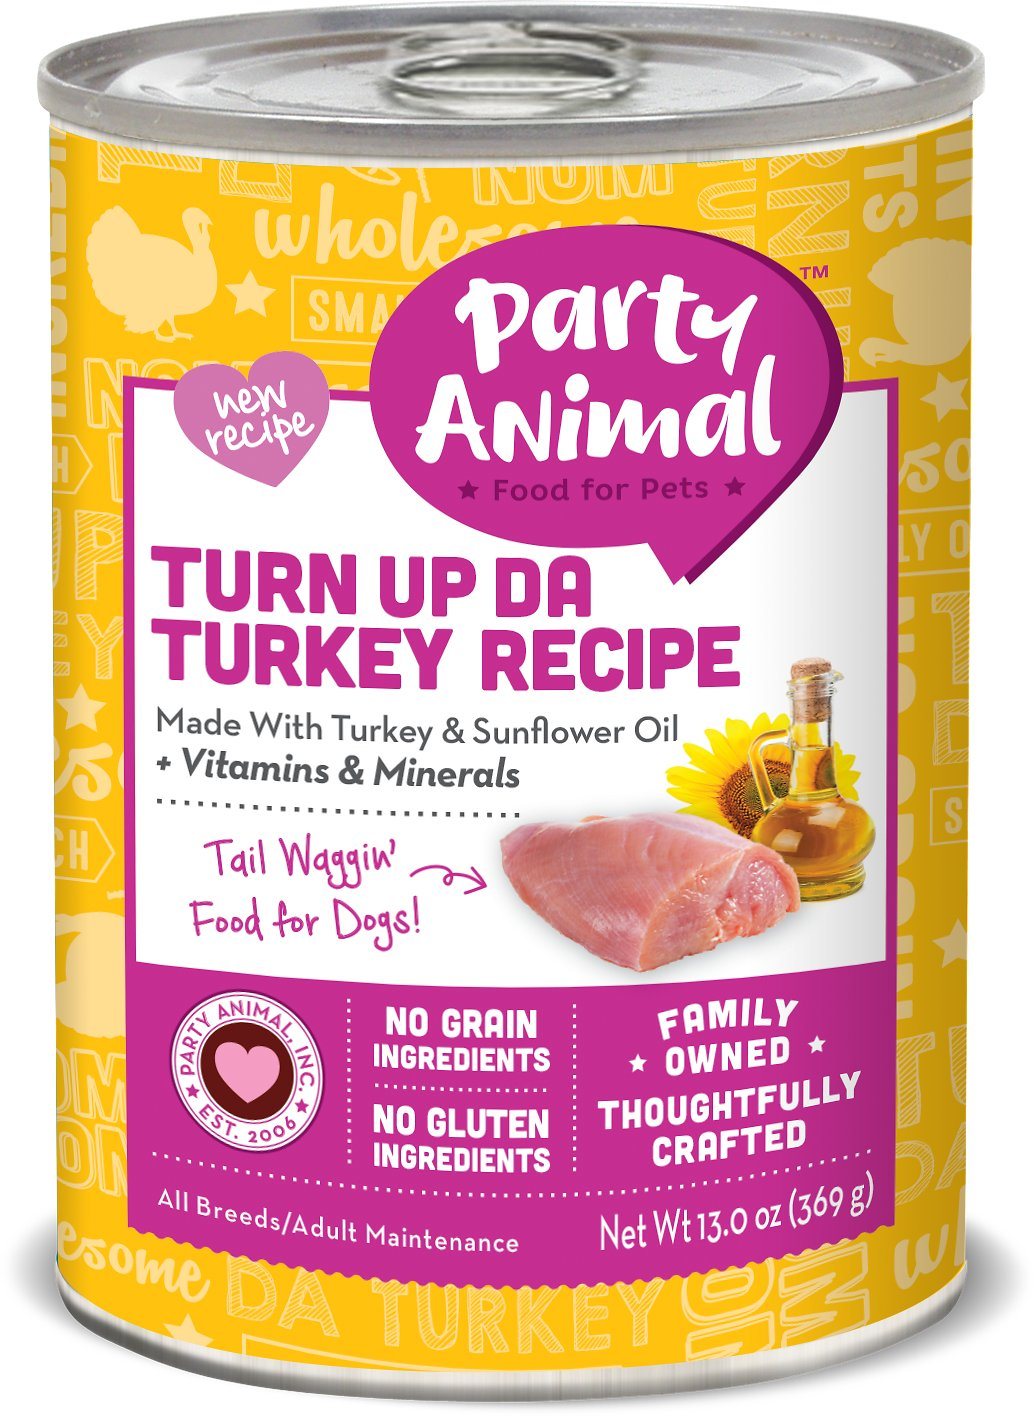 Party Animal Turn Up Da Turkey Recipe Grain-Free Canned Dog Food, 13-oz